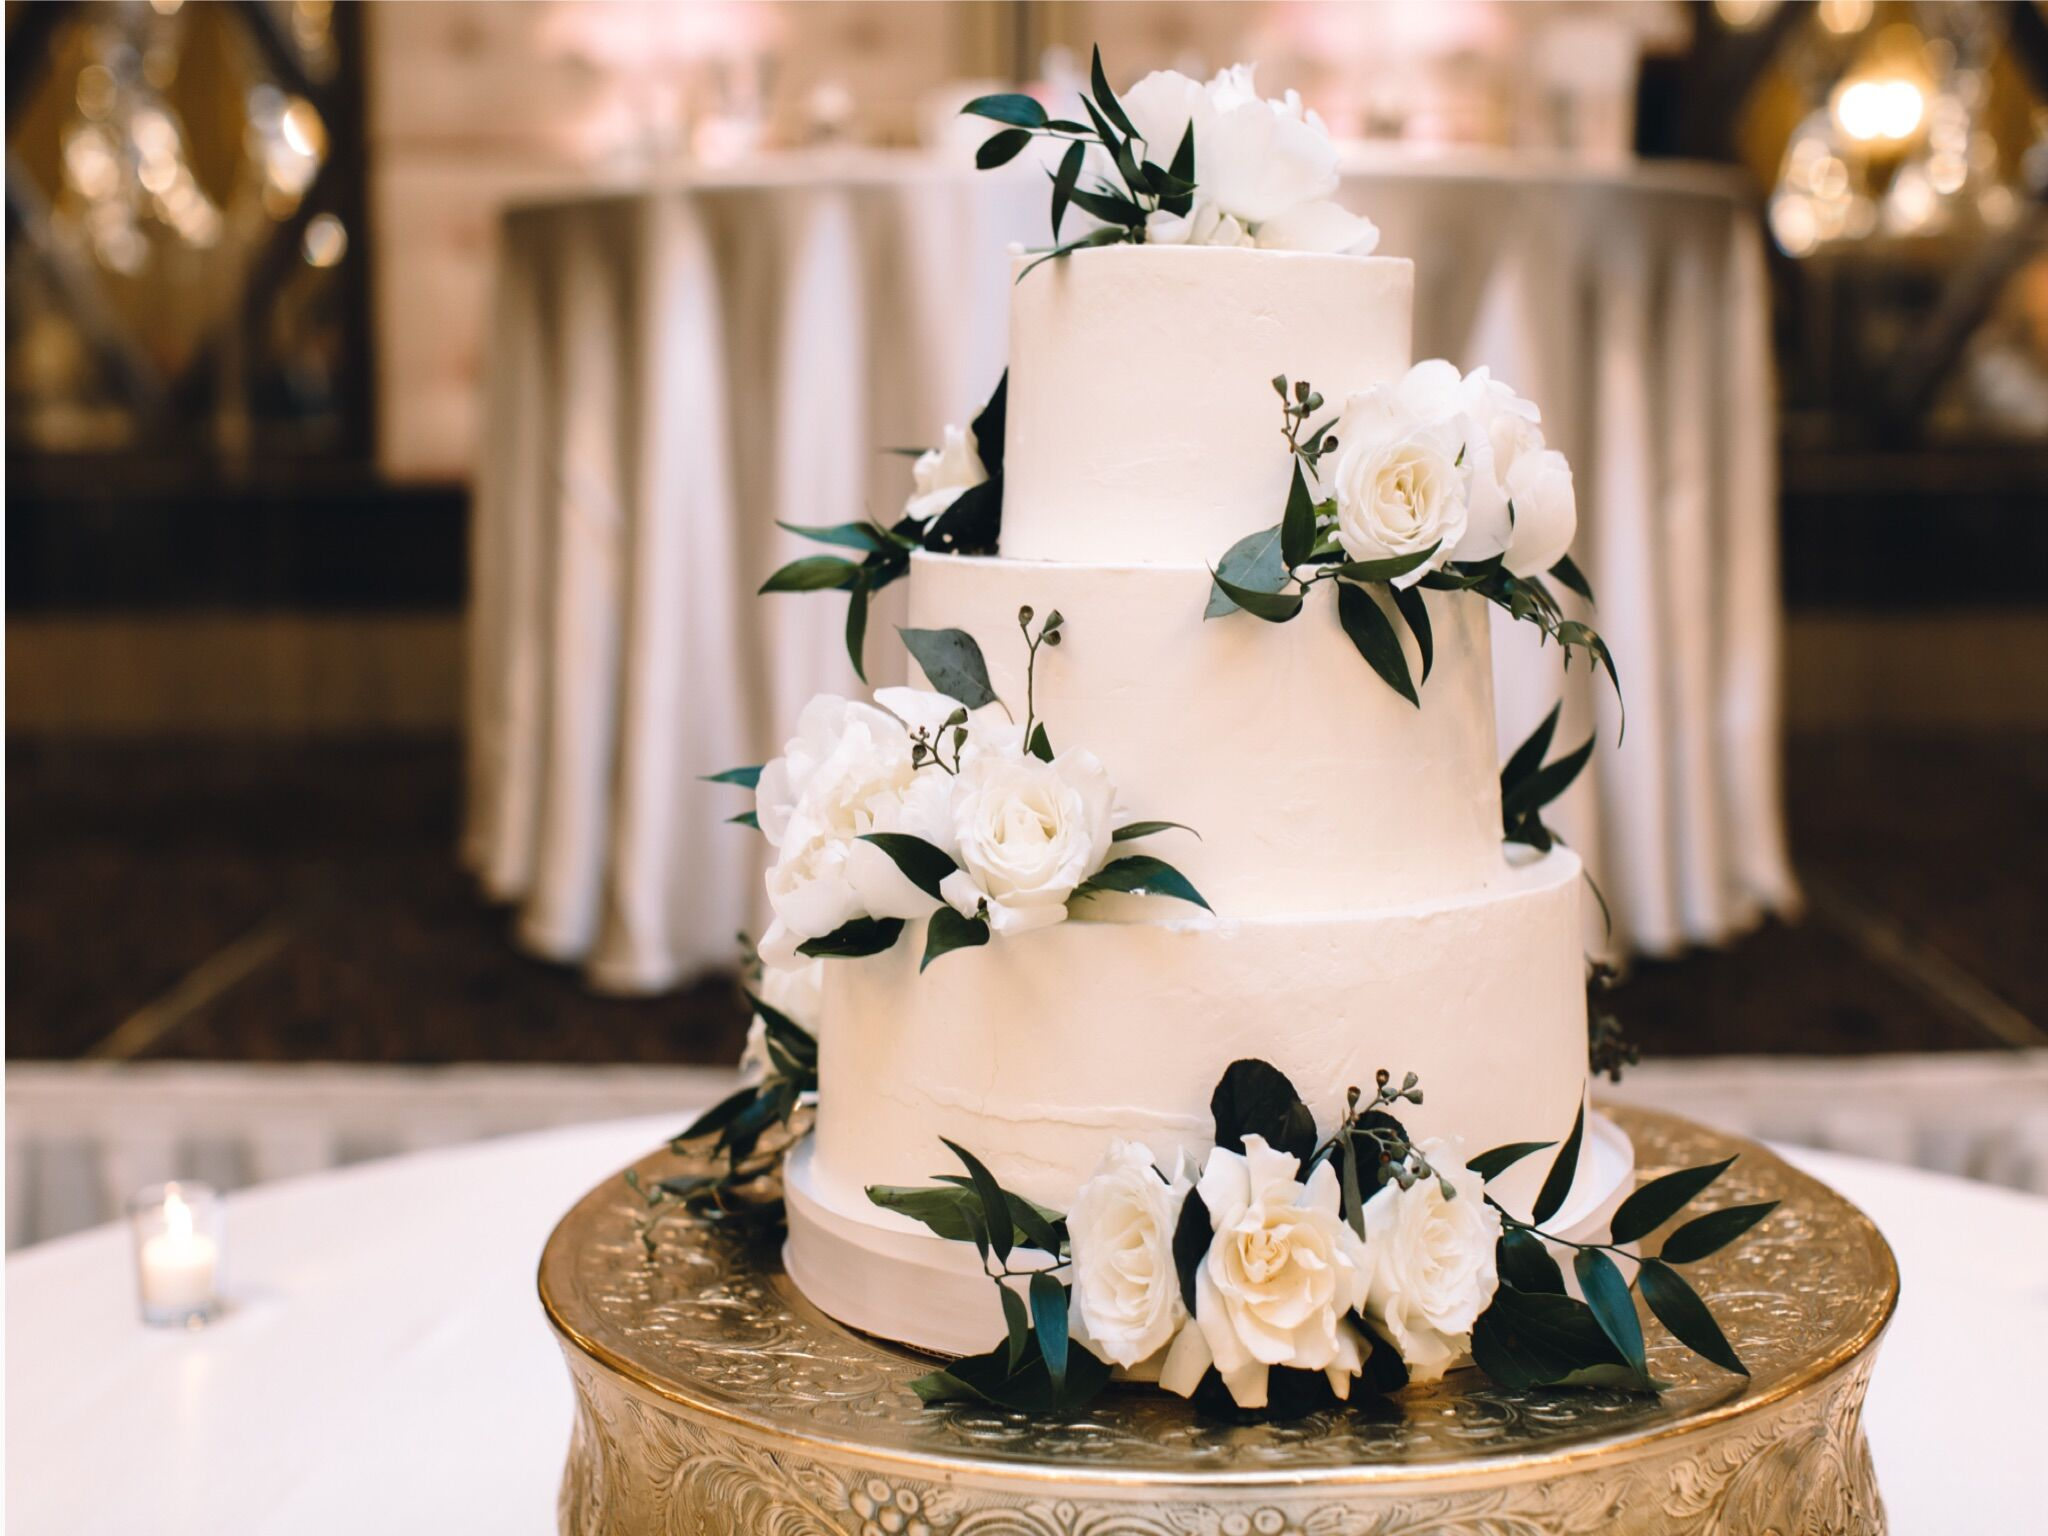 Wedding Cake Bakeries In Evanston IL